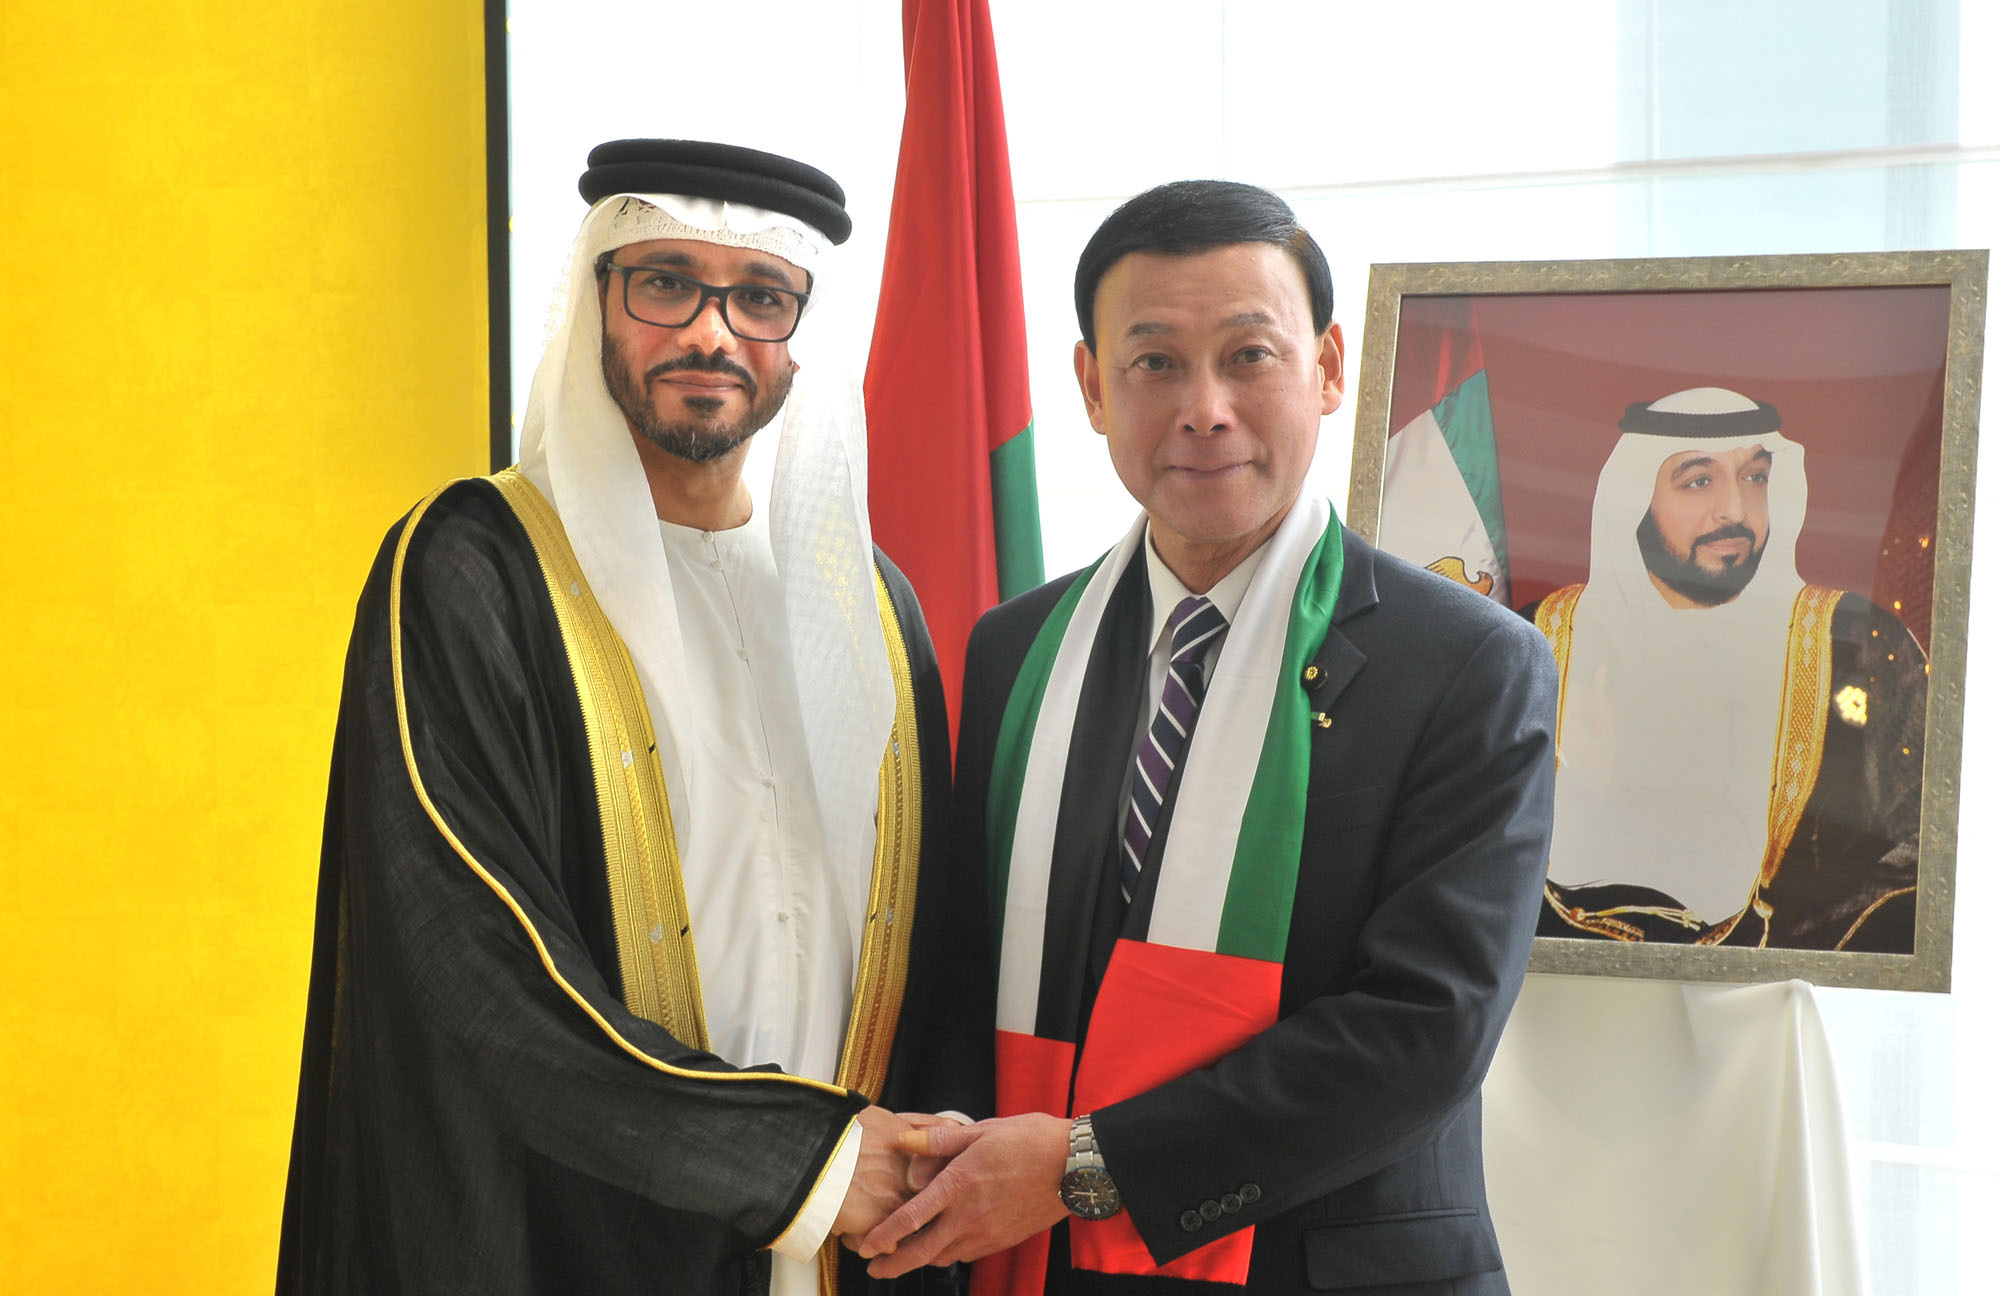 UAE Ambassador Khaled Alameri (left) shakes hands with Parliamentary Vice-Minister for Foreign Affairs Motome Takisawa, during a reception celebrating the 45th anniversary of UAE national day at the Palace Hotel Tokyo on Dec. 1. | YOSHIAKI MIURA